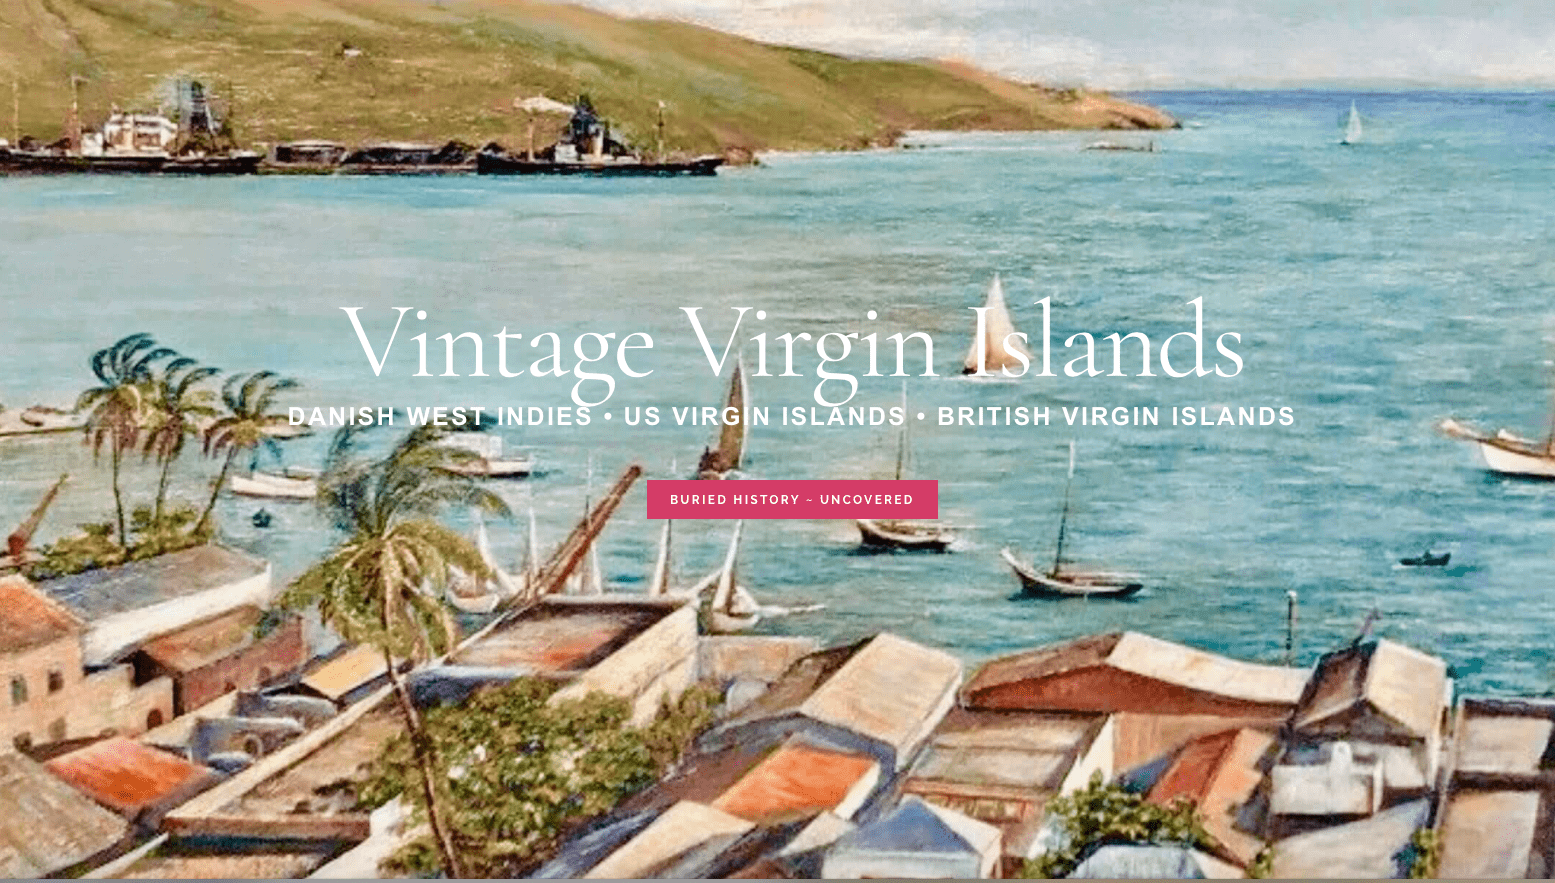 Virgin islands history by Valerie Sims